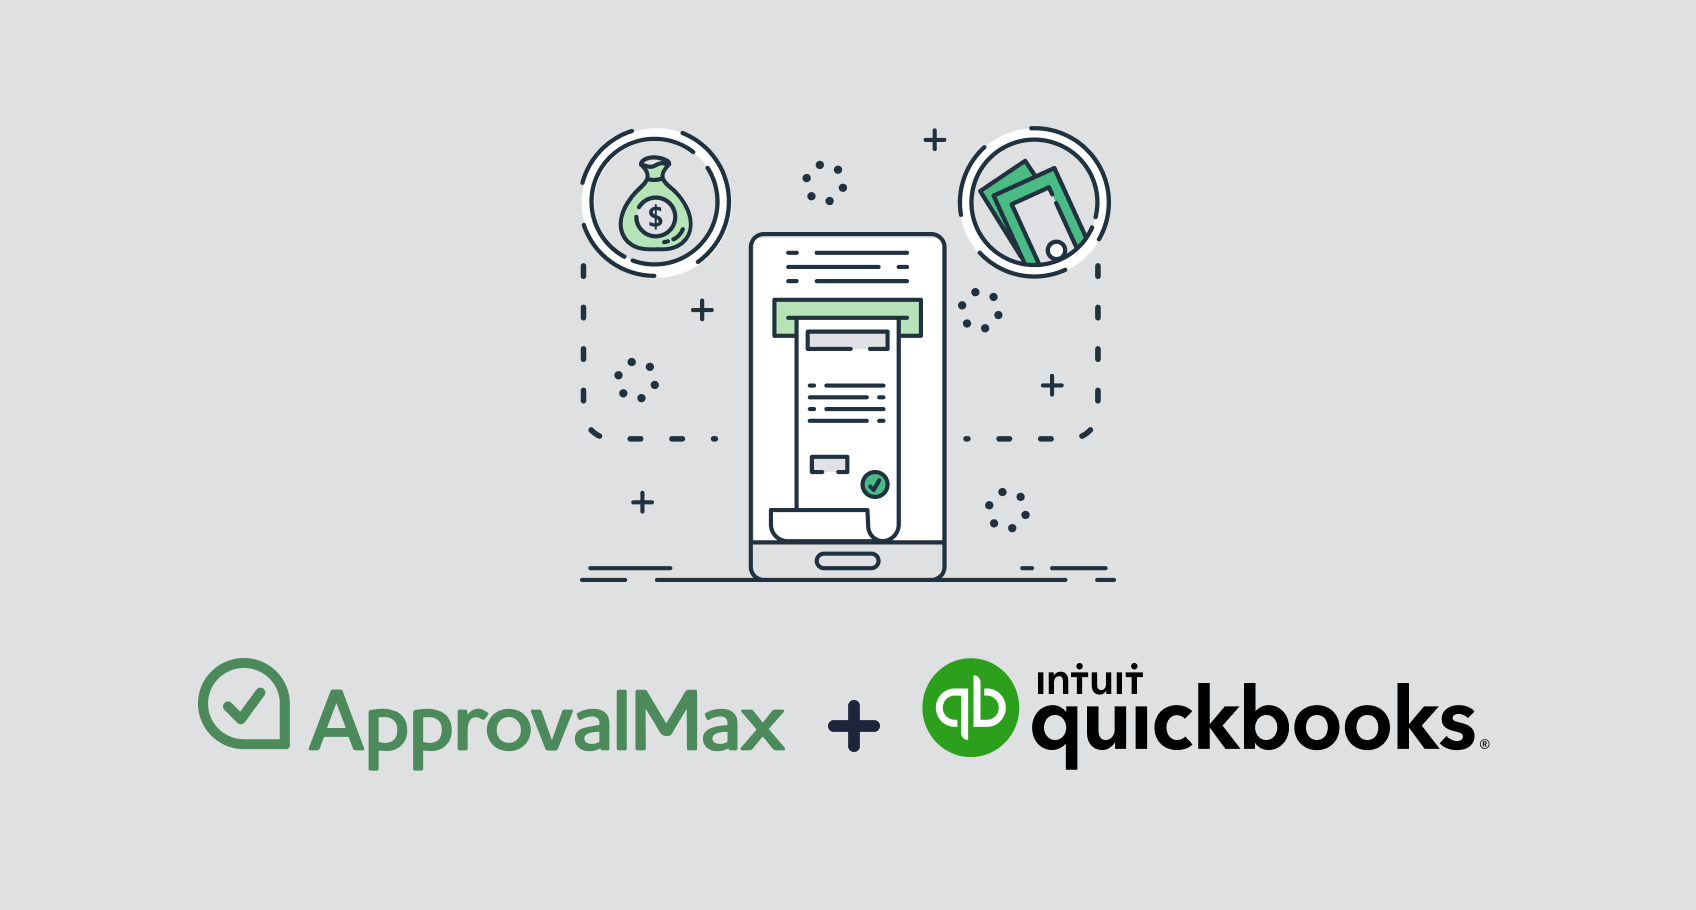 How to create bills for QuickBooks Online directly in ApprovalMax